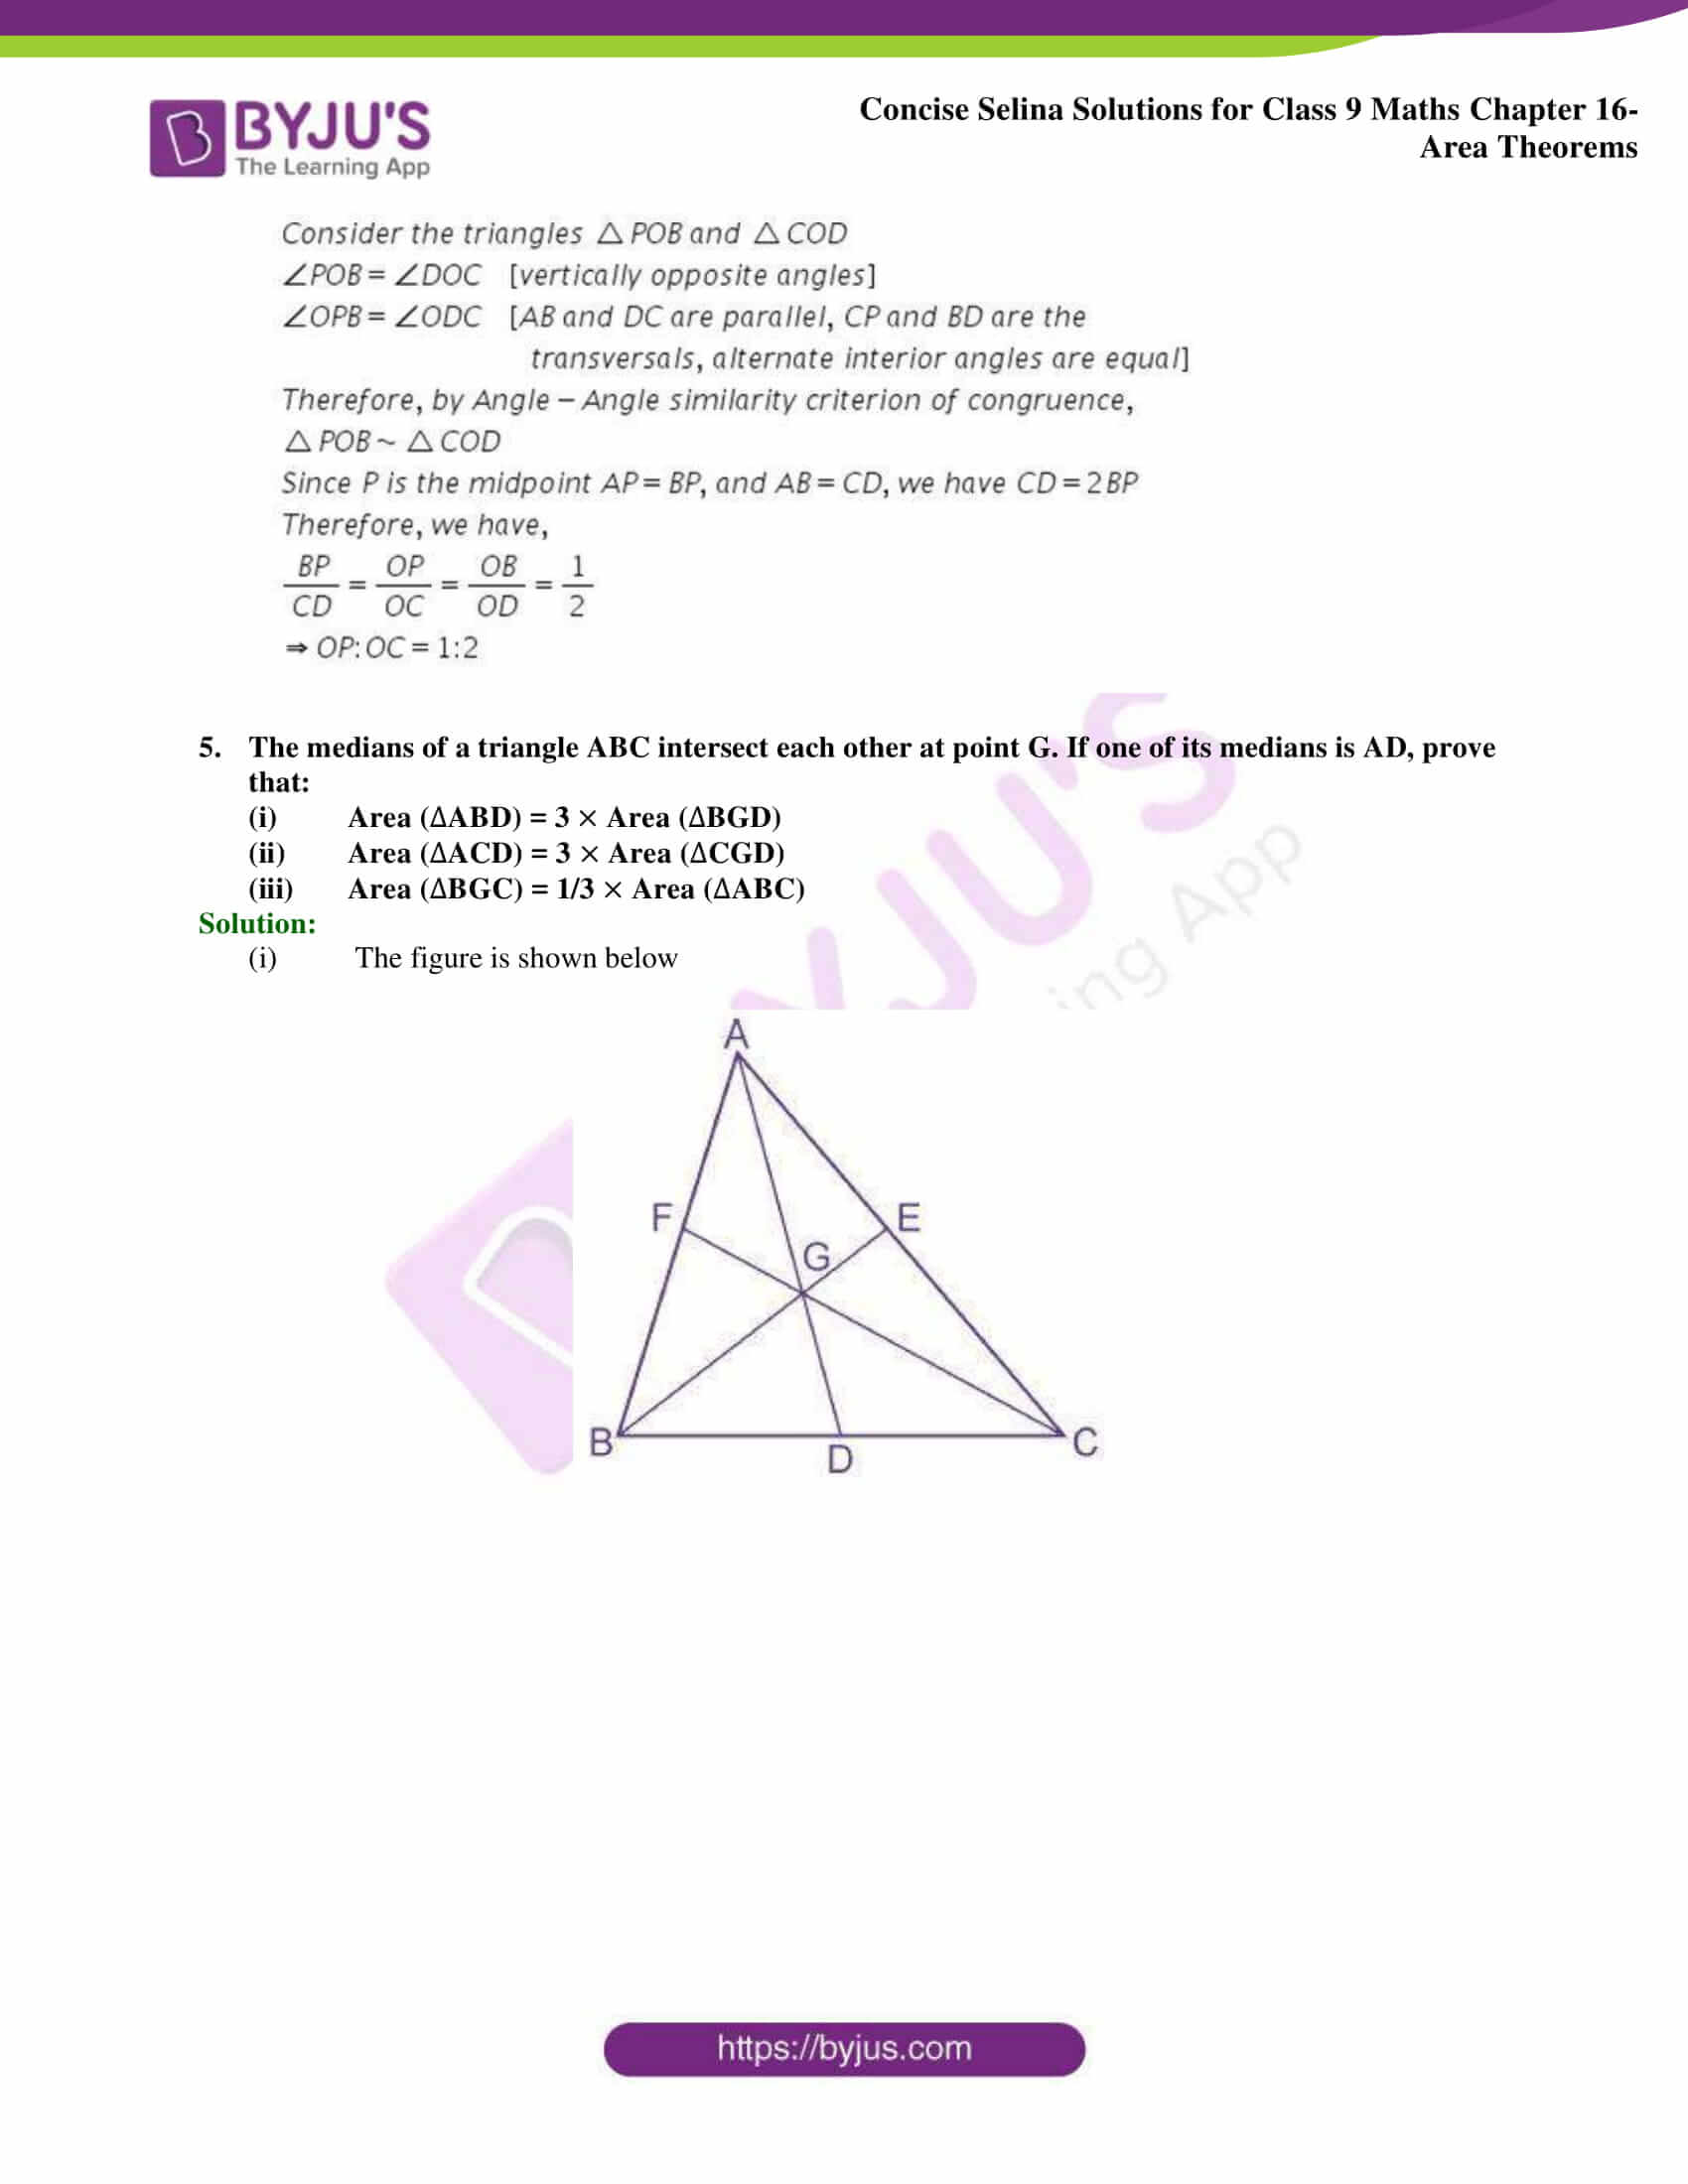 Concise Selina Solutions Class 9 Maths Chapter 16 Area Theorems part 26